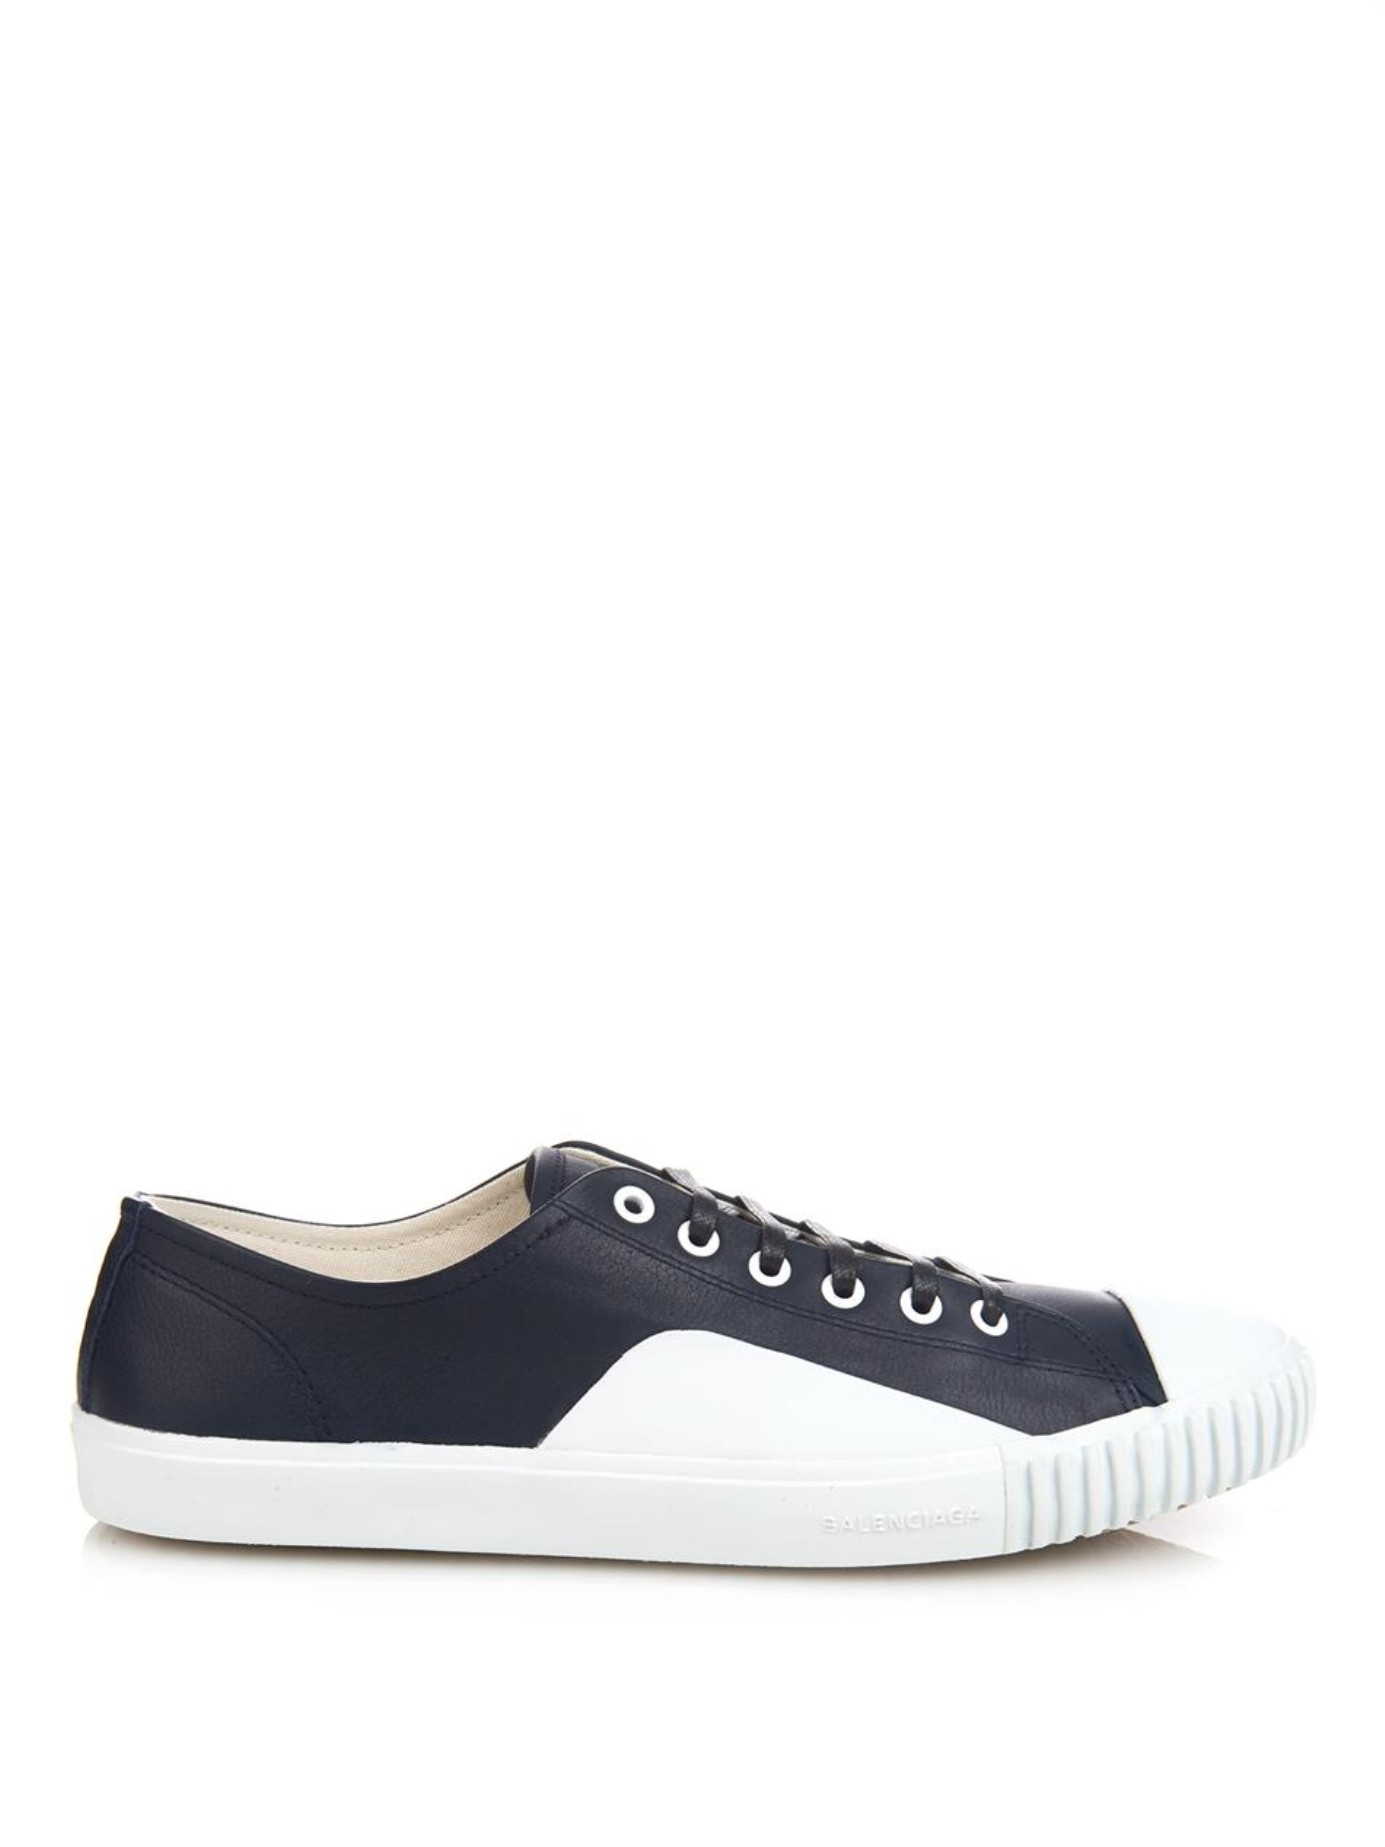 balenciaga young leather low top sneakers in blue for men lyst. Black Bedroom Furniture Sets. Home Design Ideas